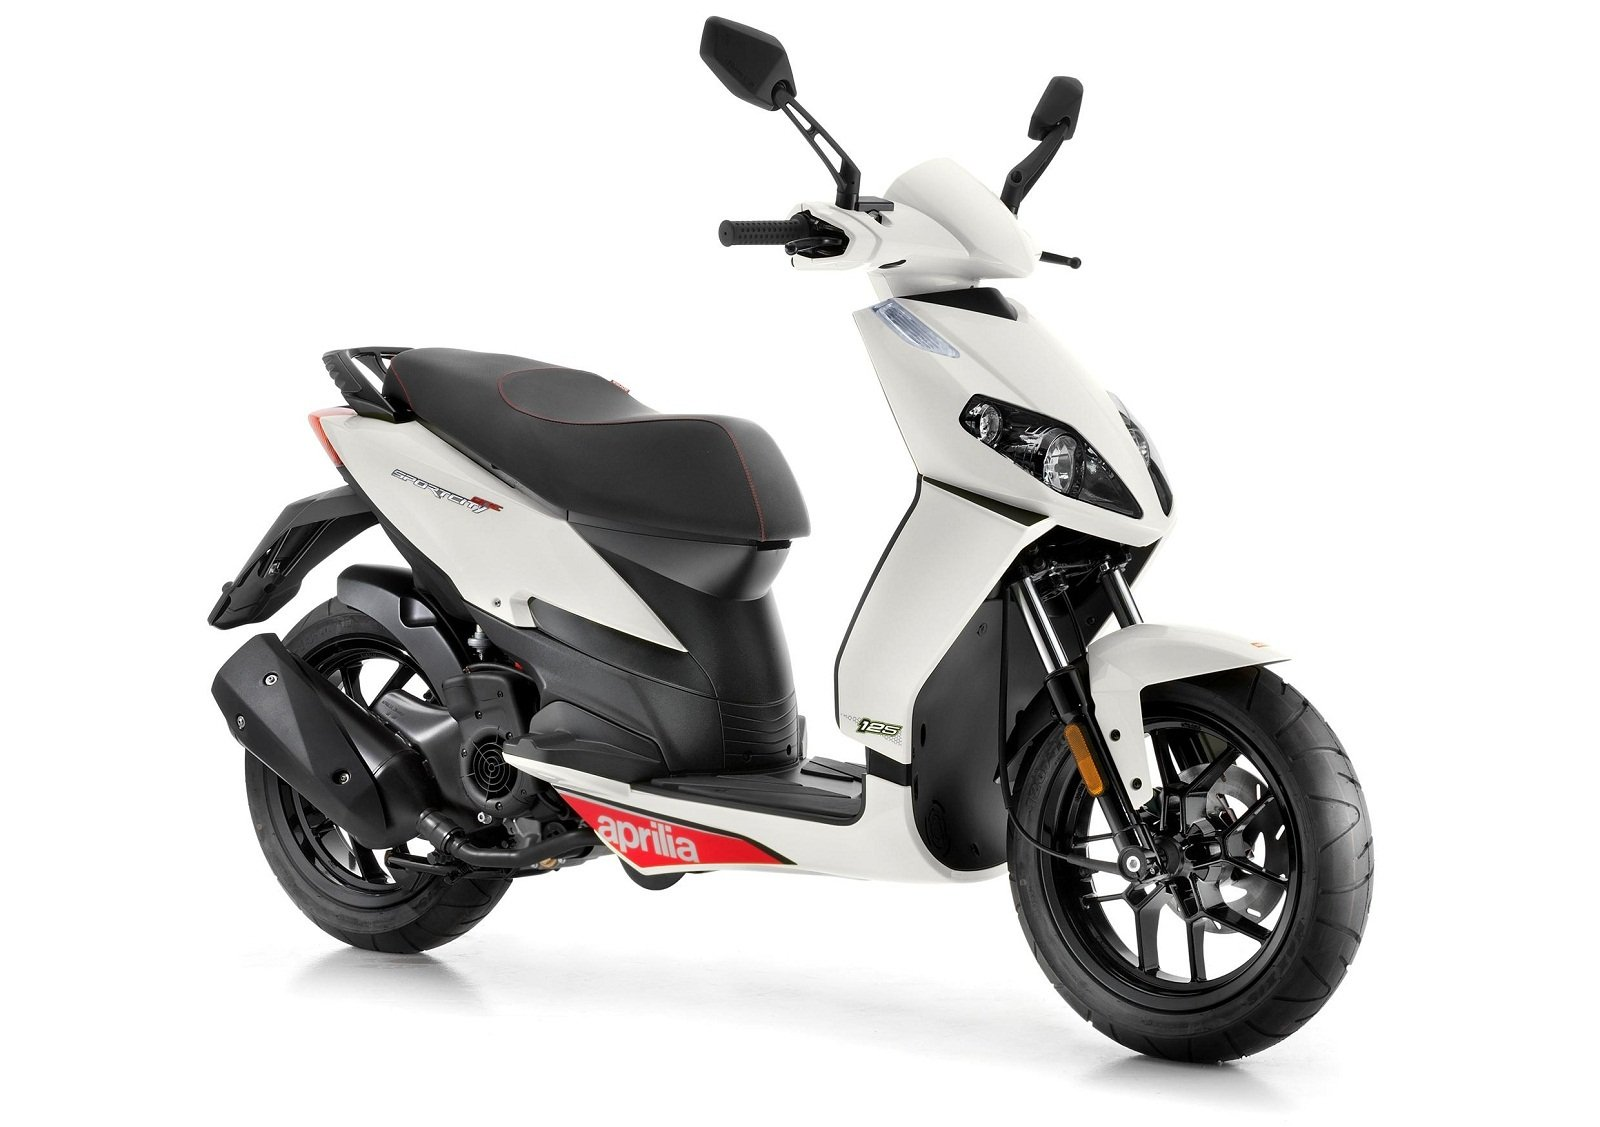 2012 2012 aprilia sportcity one 50 4t 125 4t picture. Black Bedroom Furniture Sets. Home Design Ideas